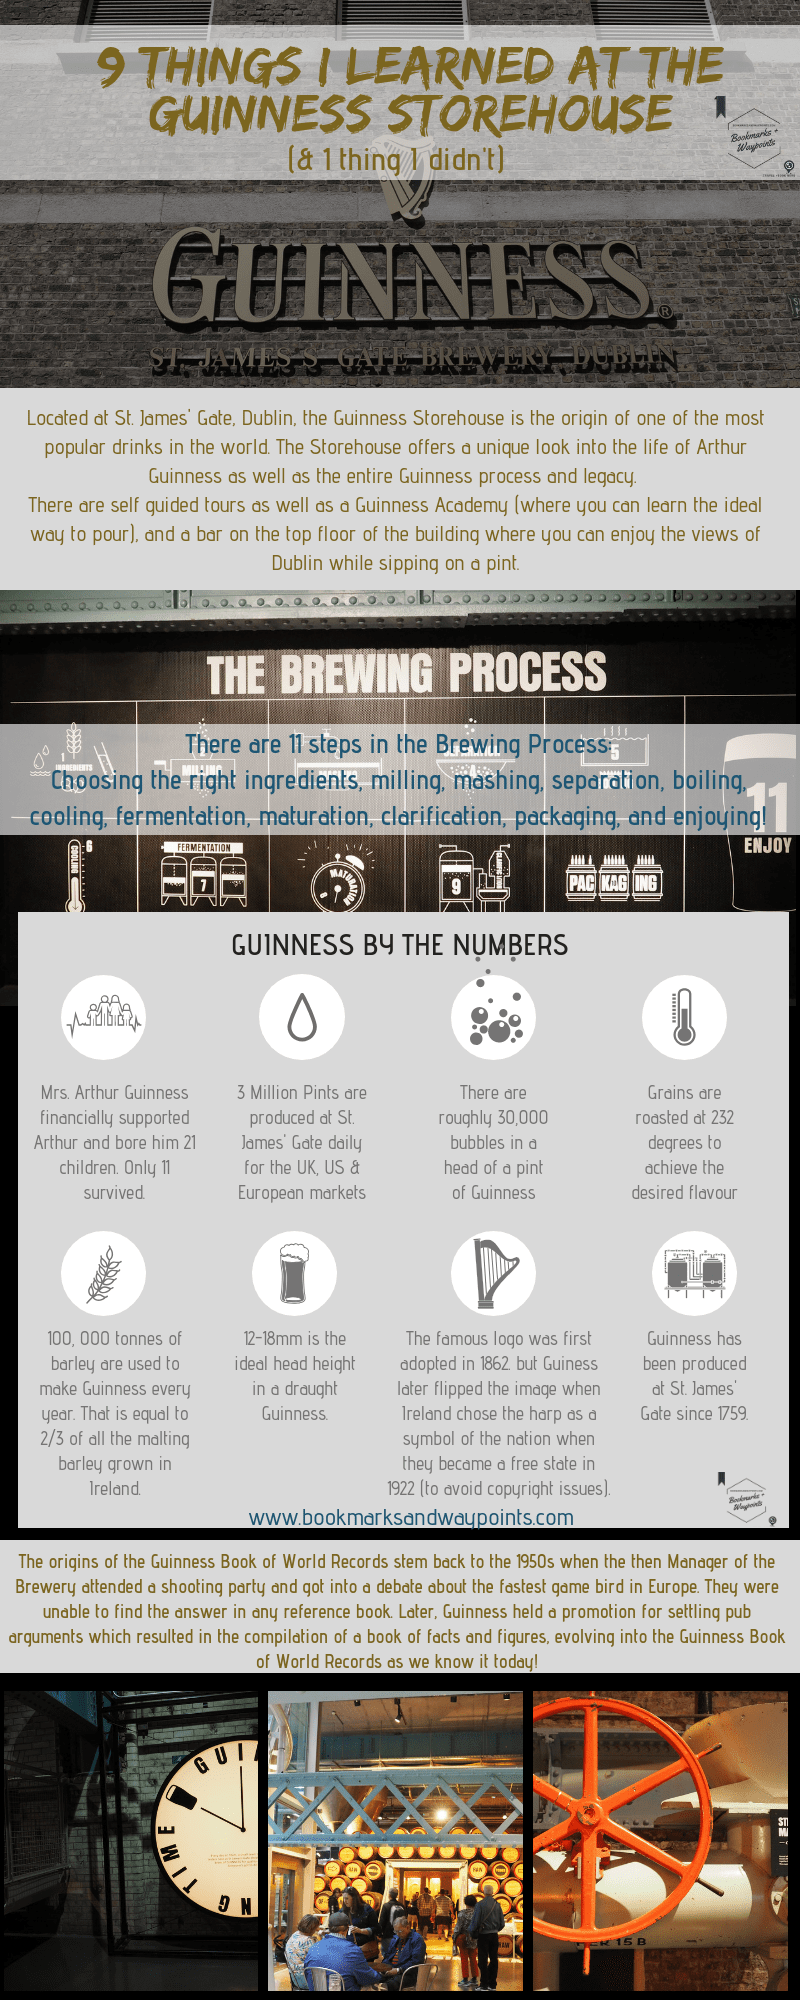 9 things I learned from the Guinness Storehouse (1)